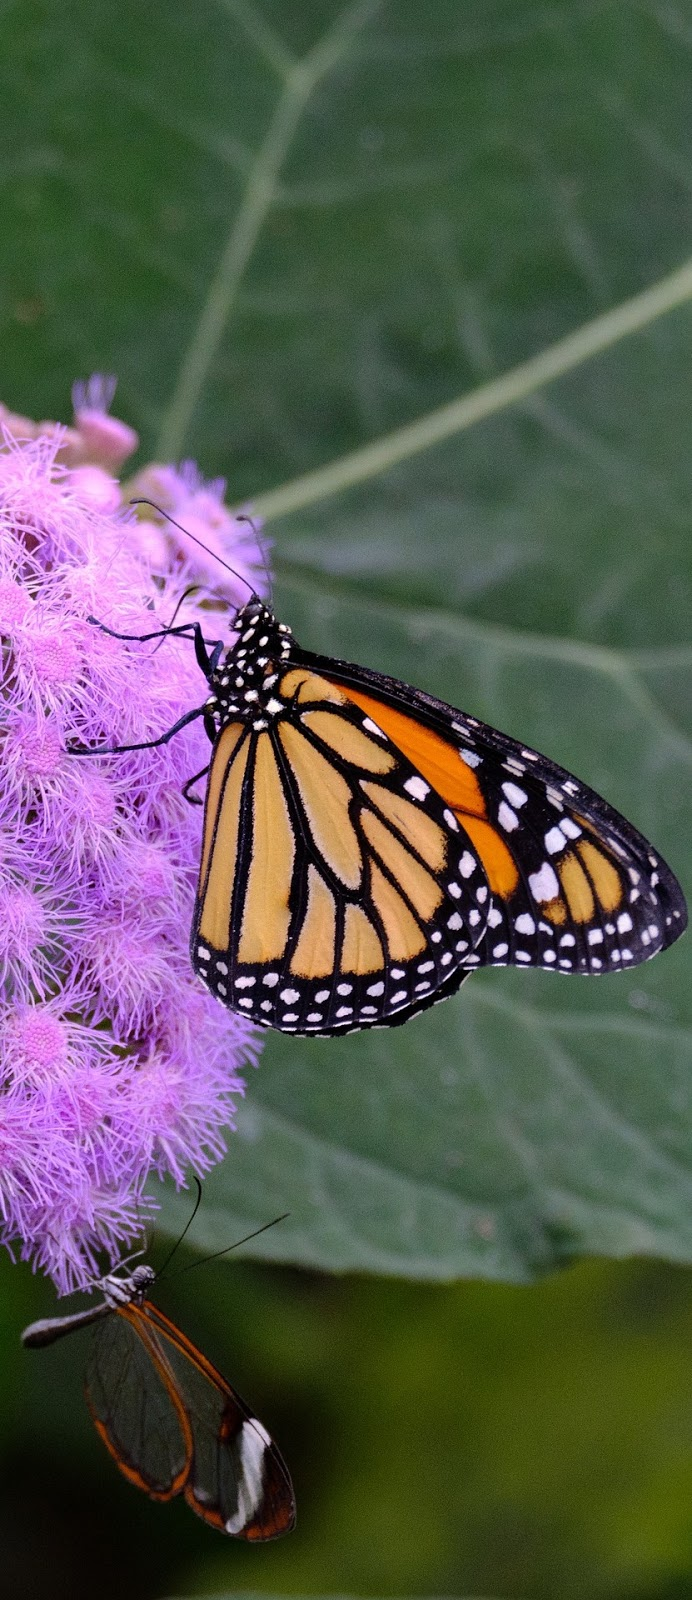 A monarch and glasswing butterfly sharing a flower.